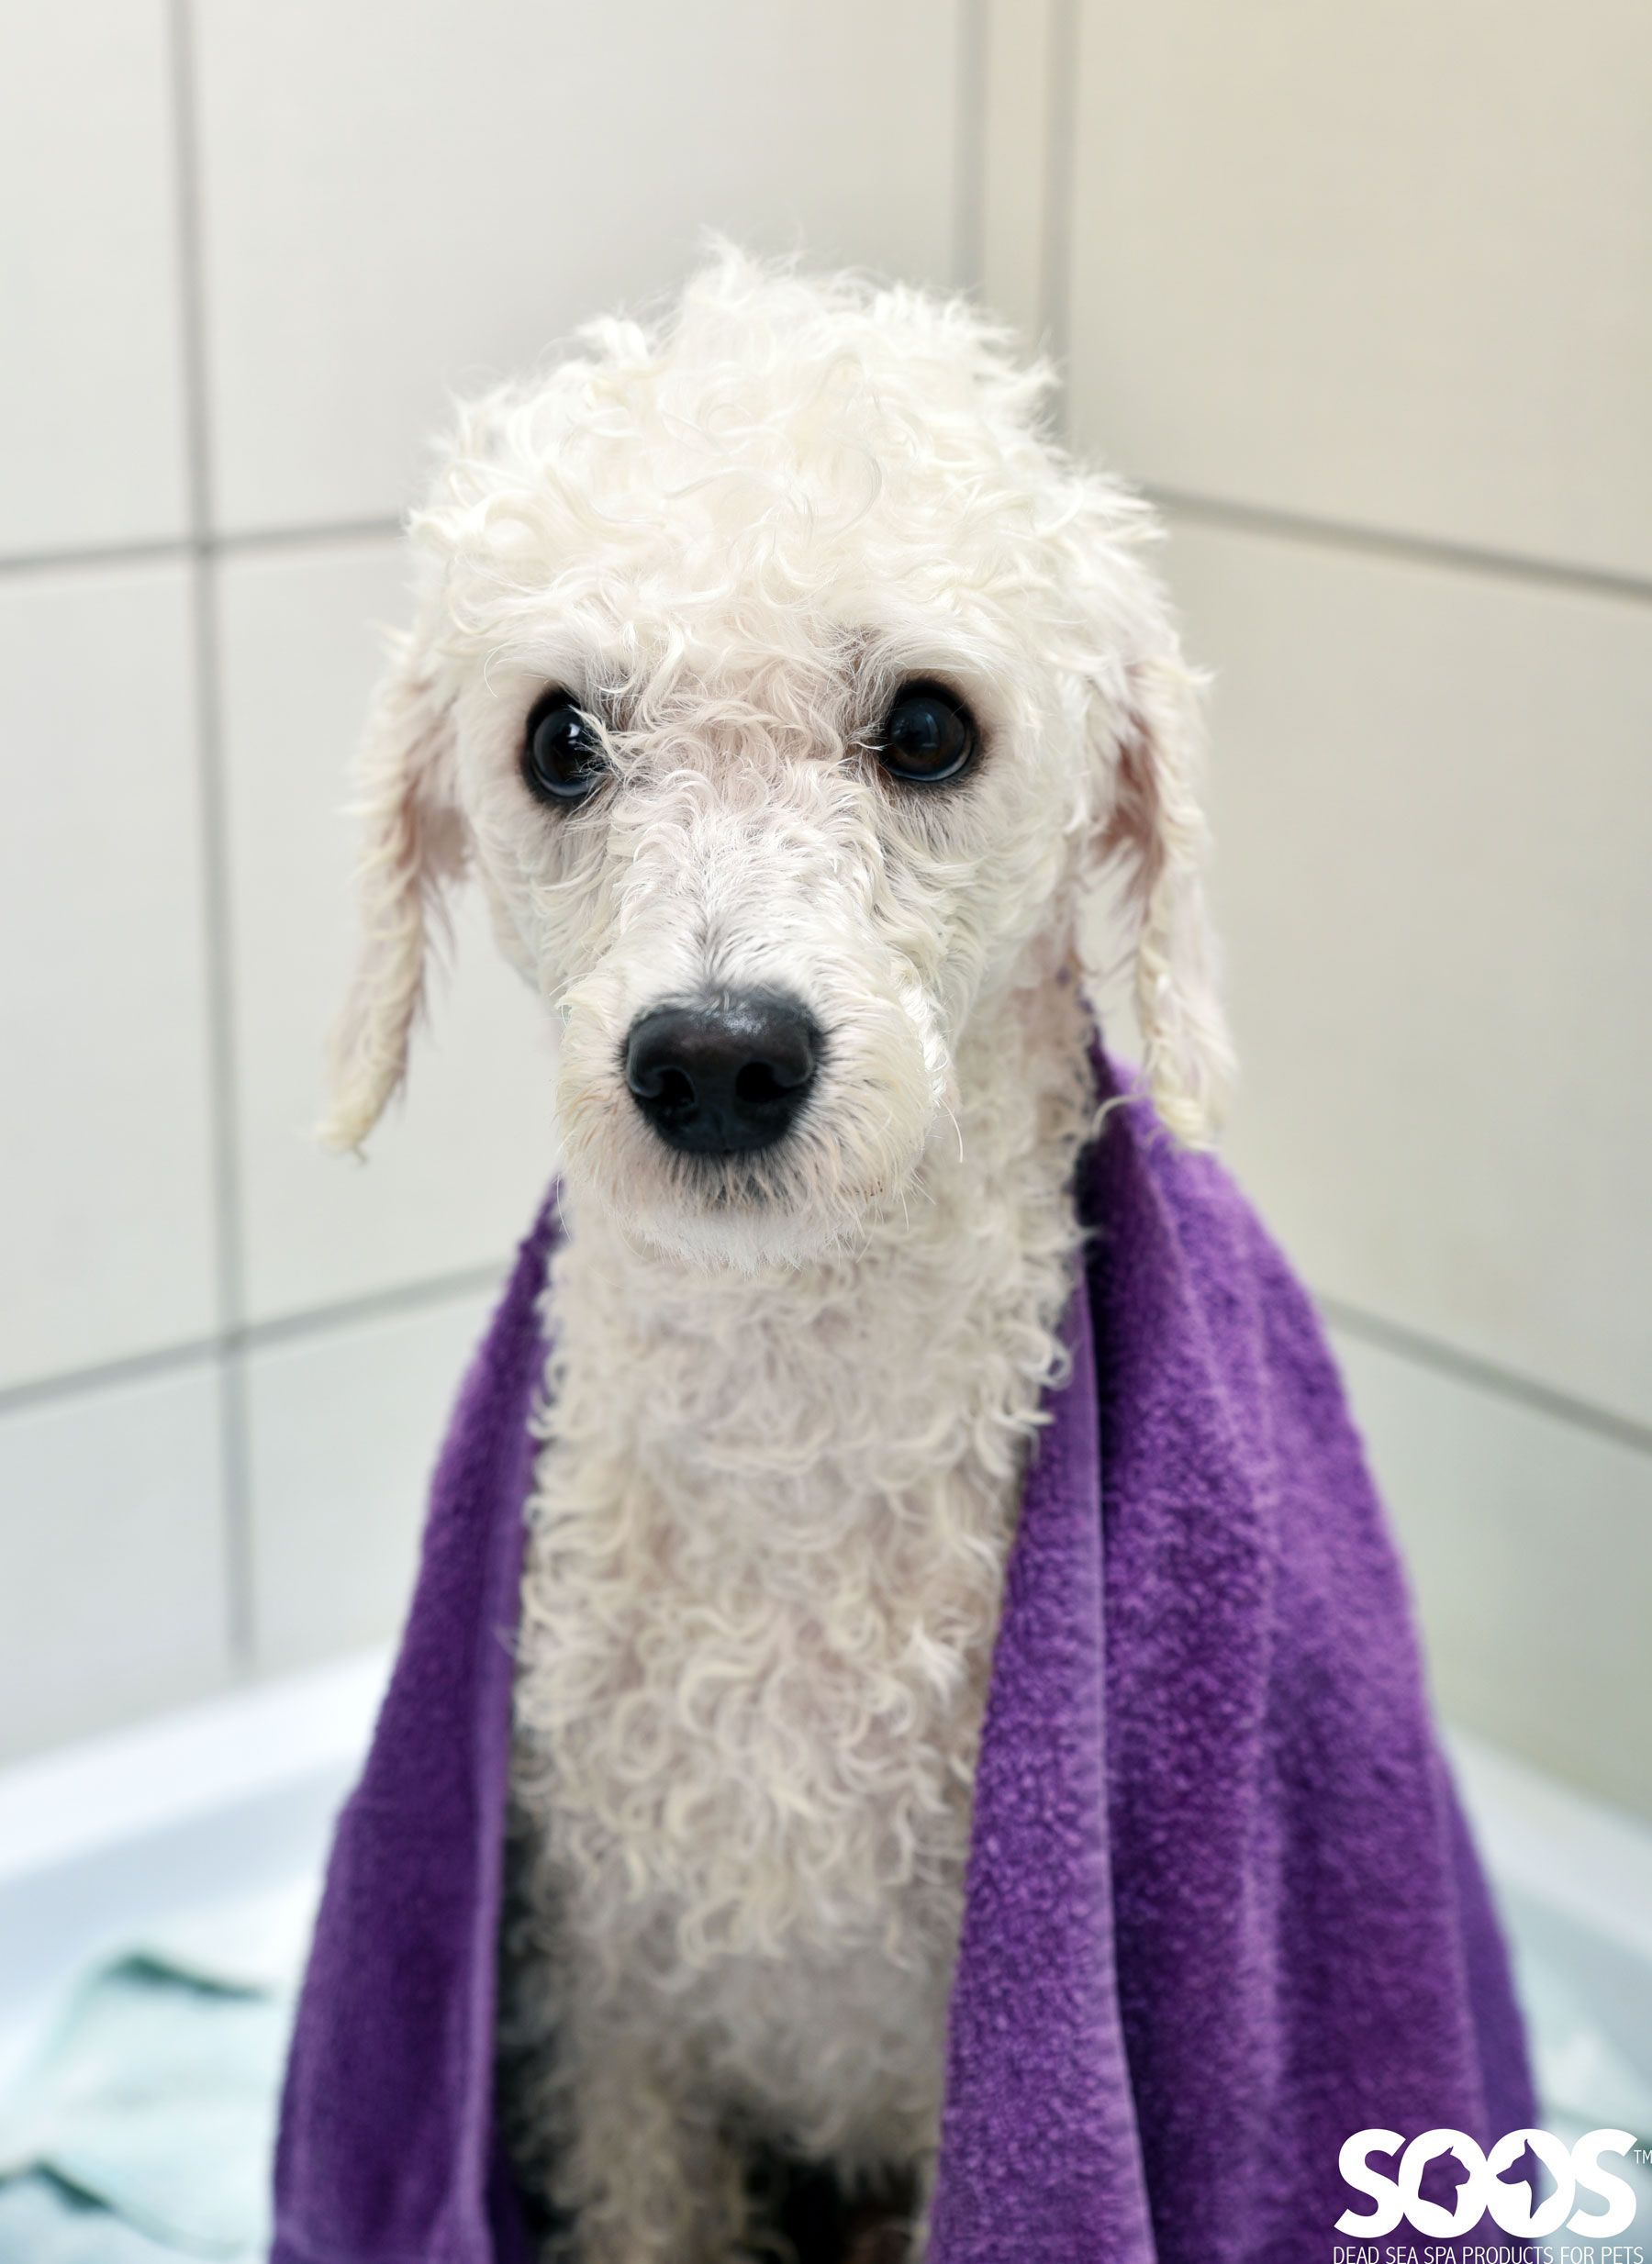 Wet Poodle Wrapped In Purple Towel After Bath Dog Bath Natural